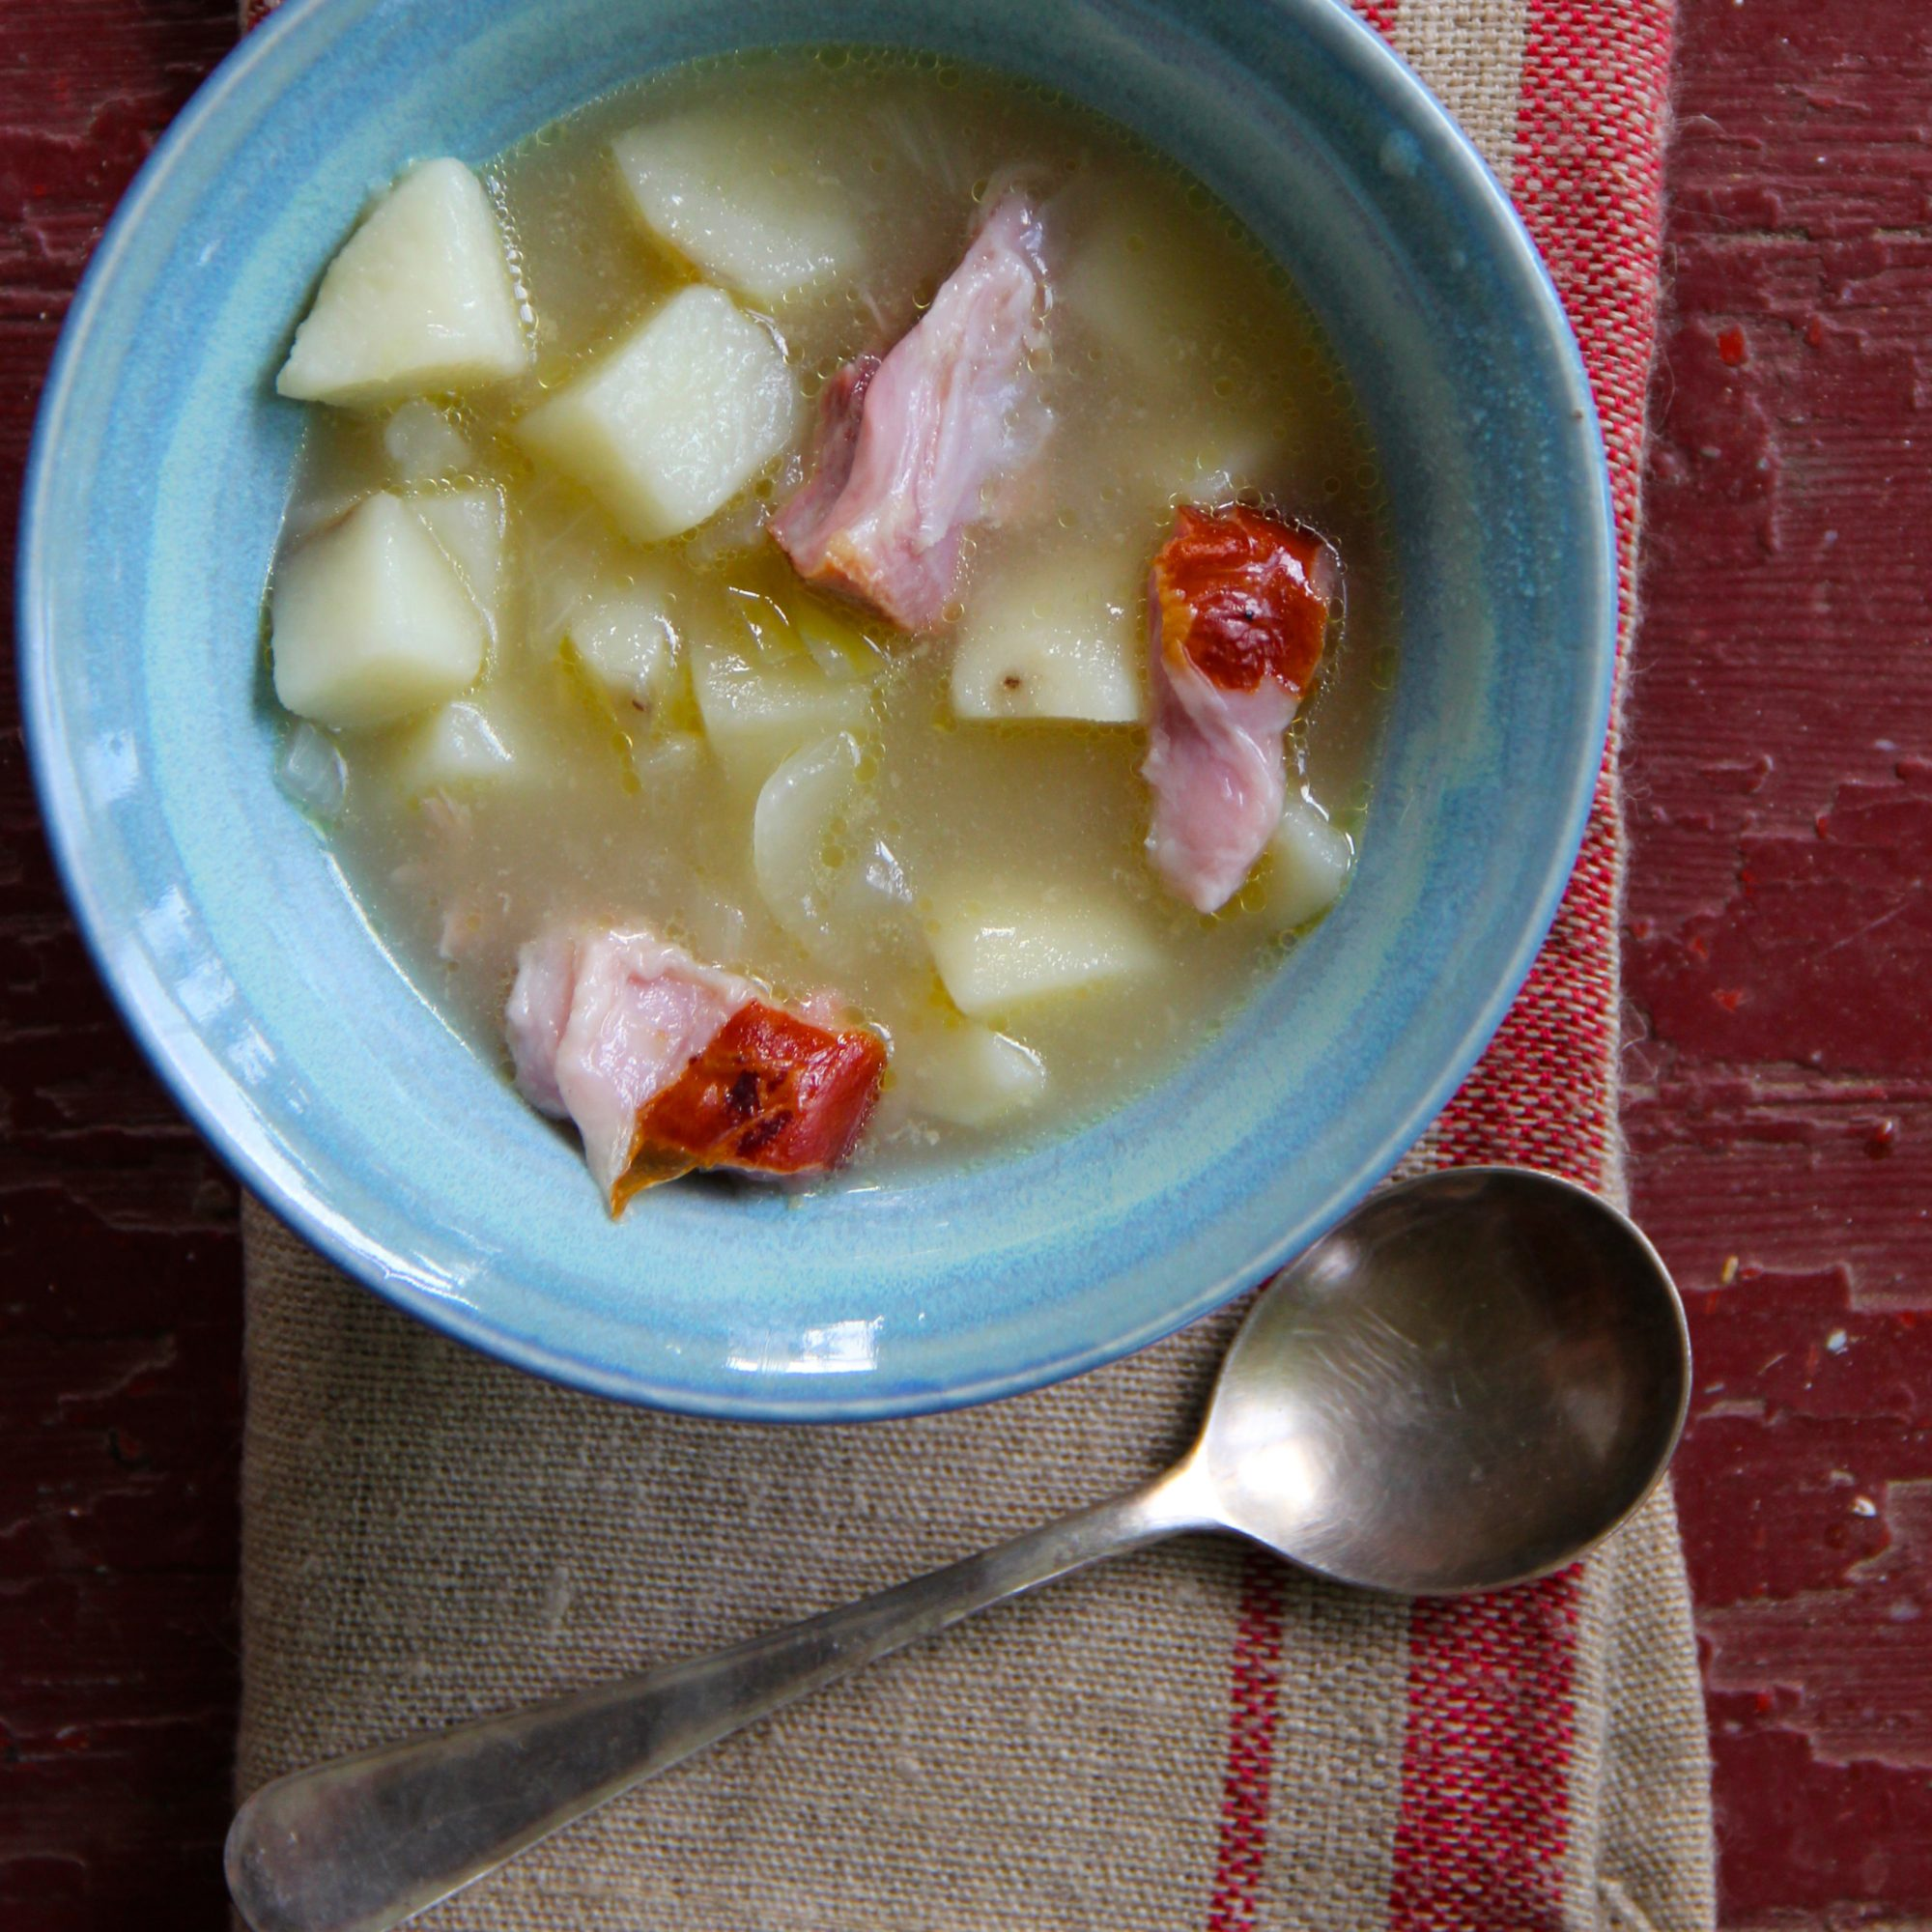 201503-r-slow-cooker-potato-and-ham-hock-soup.jpg